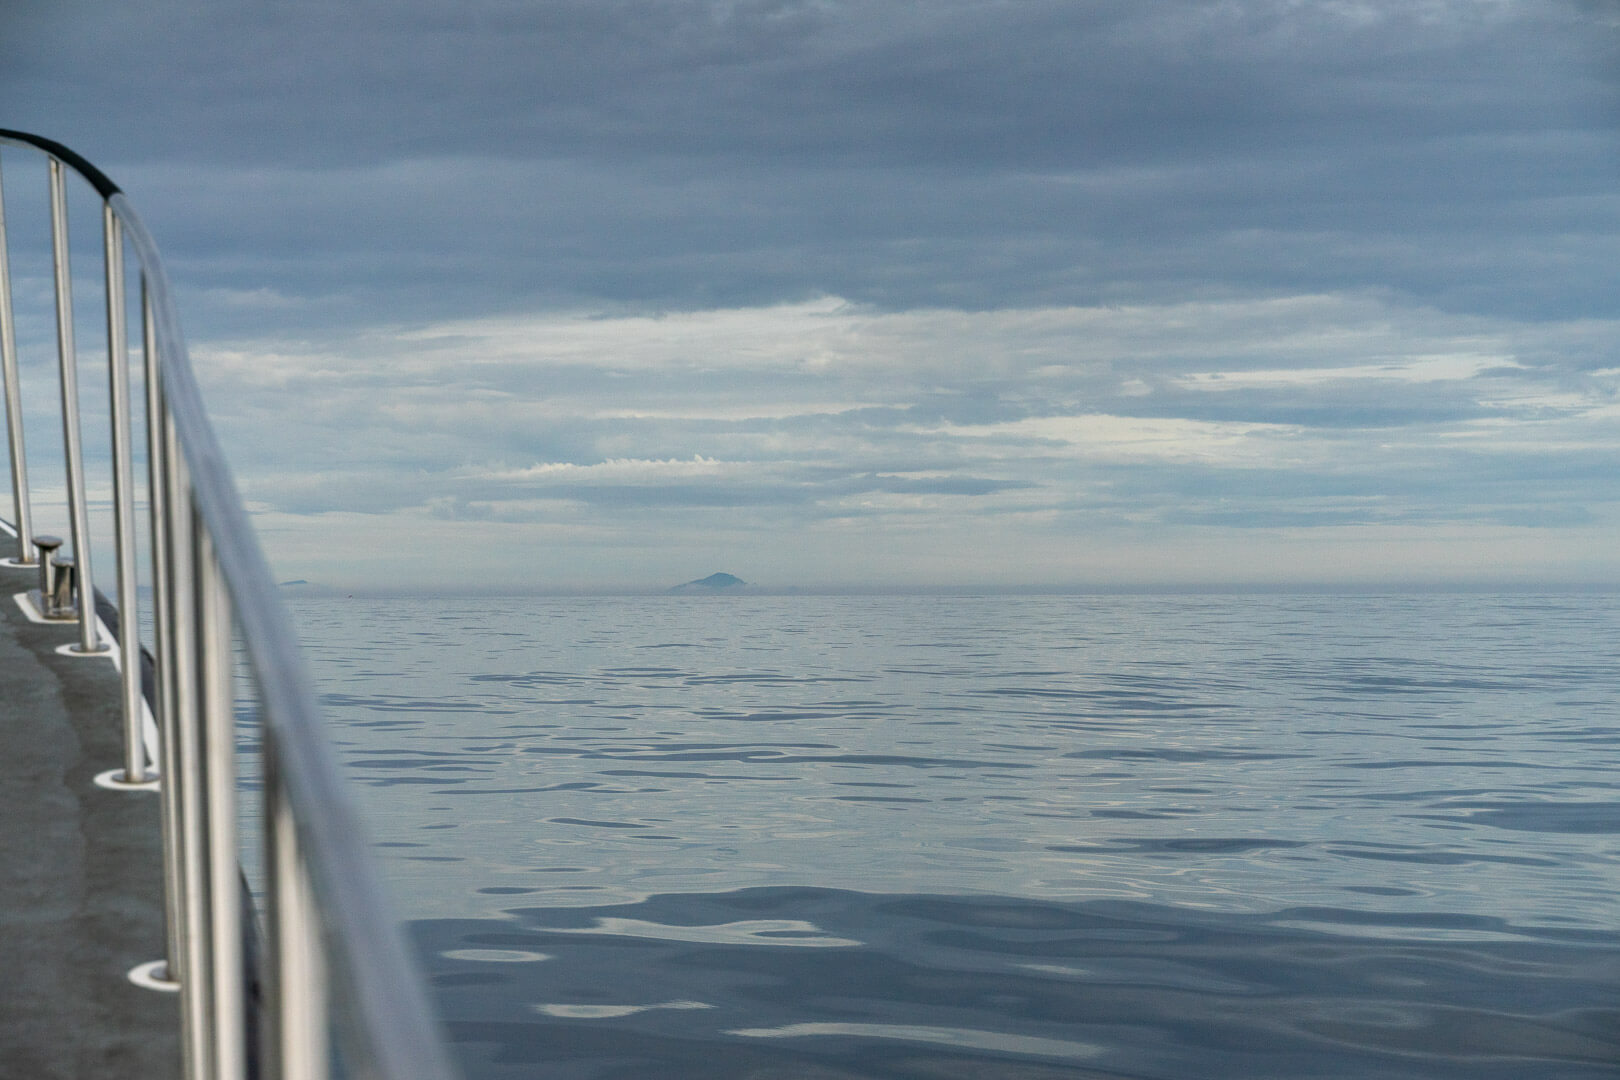 St Kilda in the distance